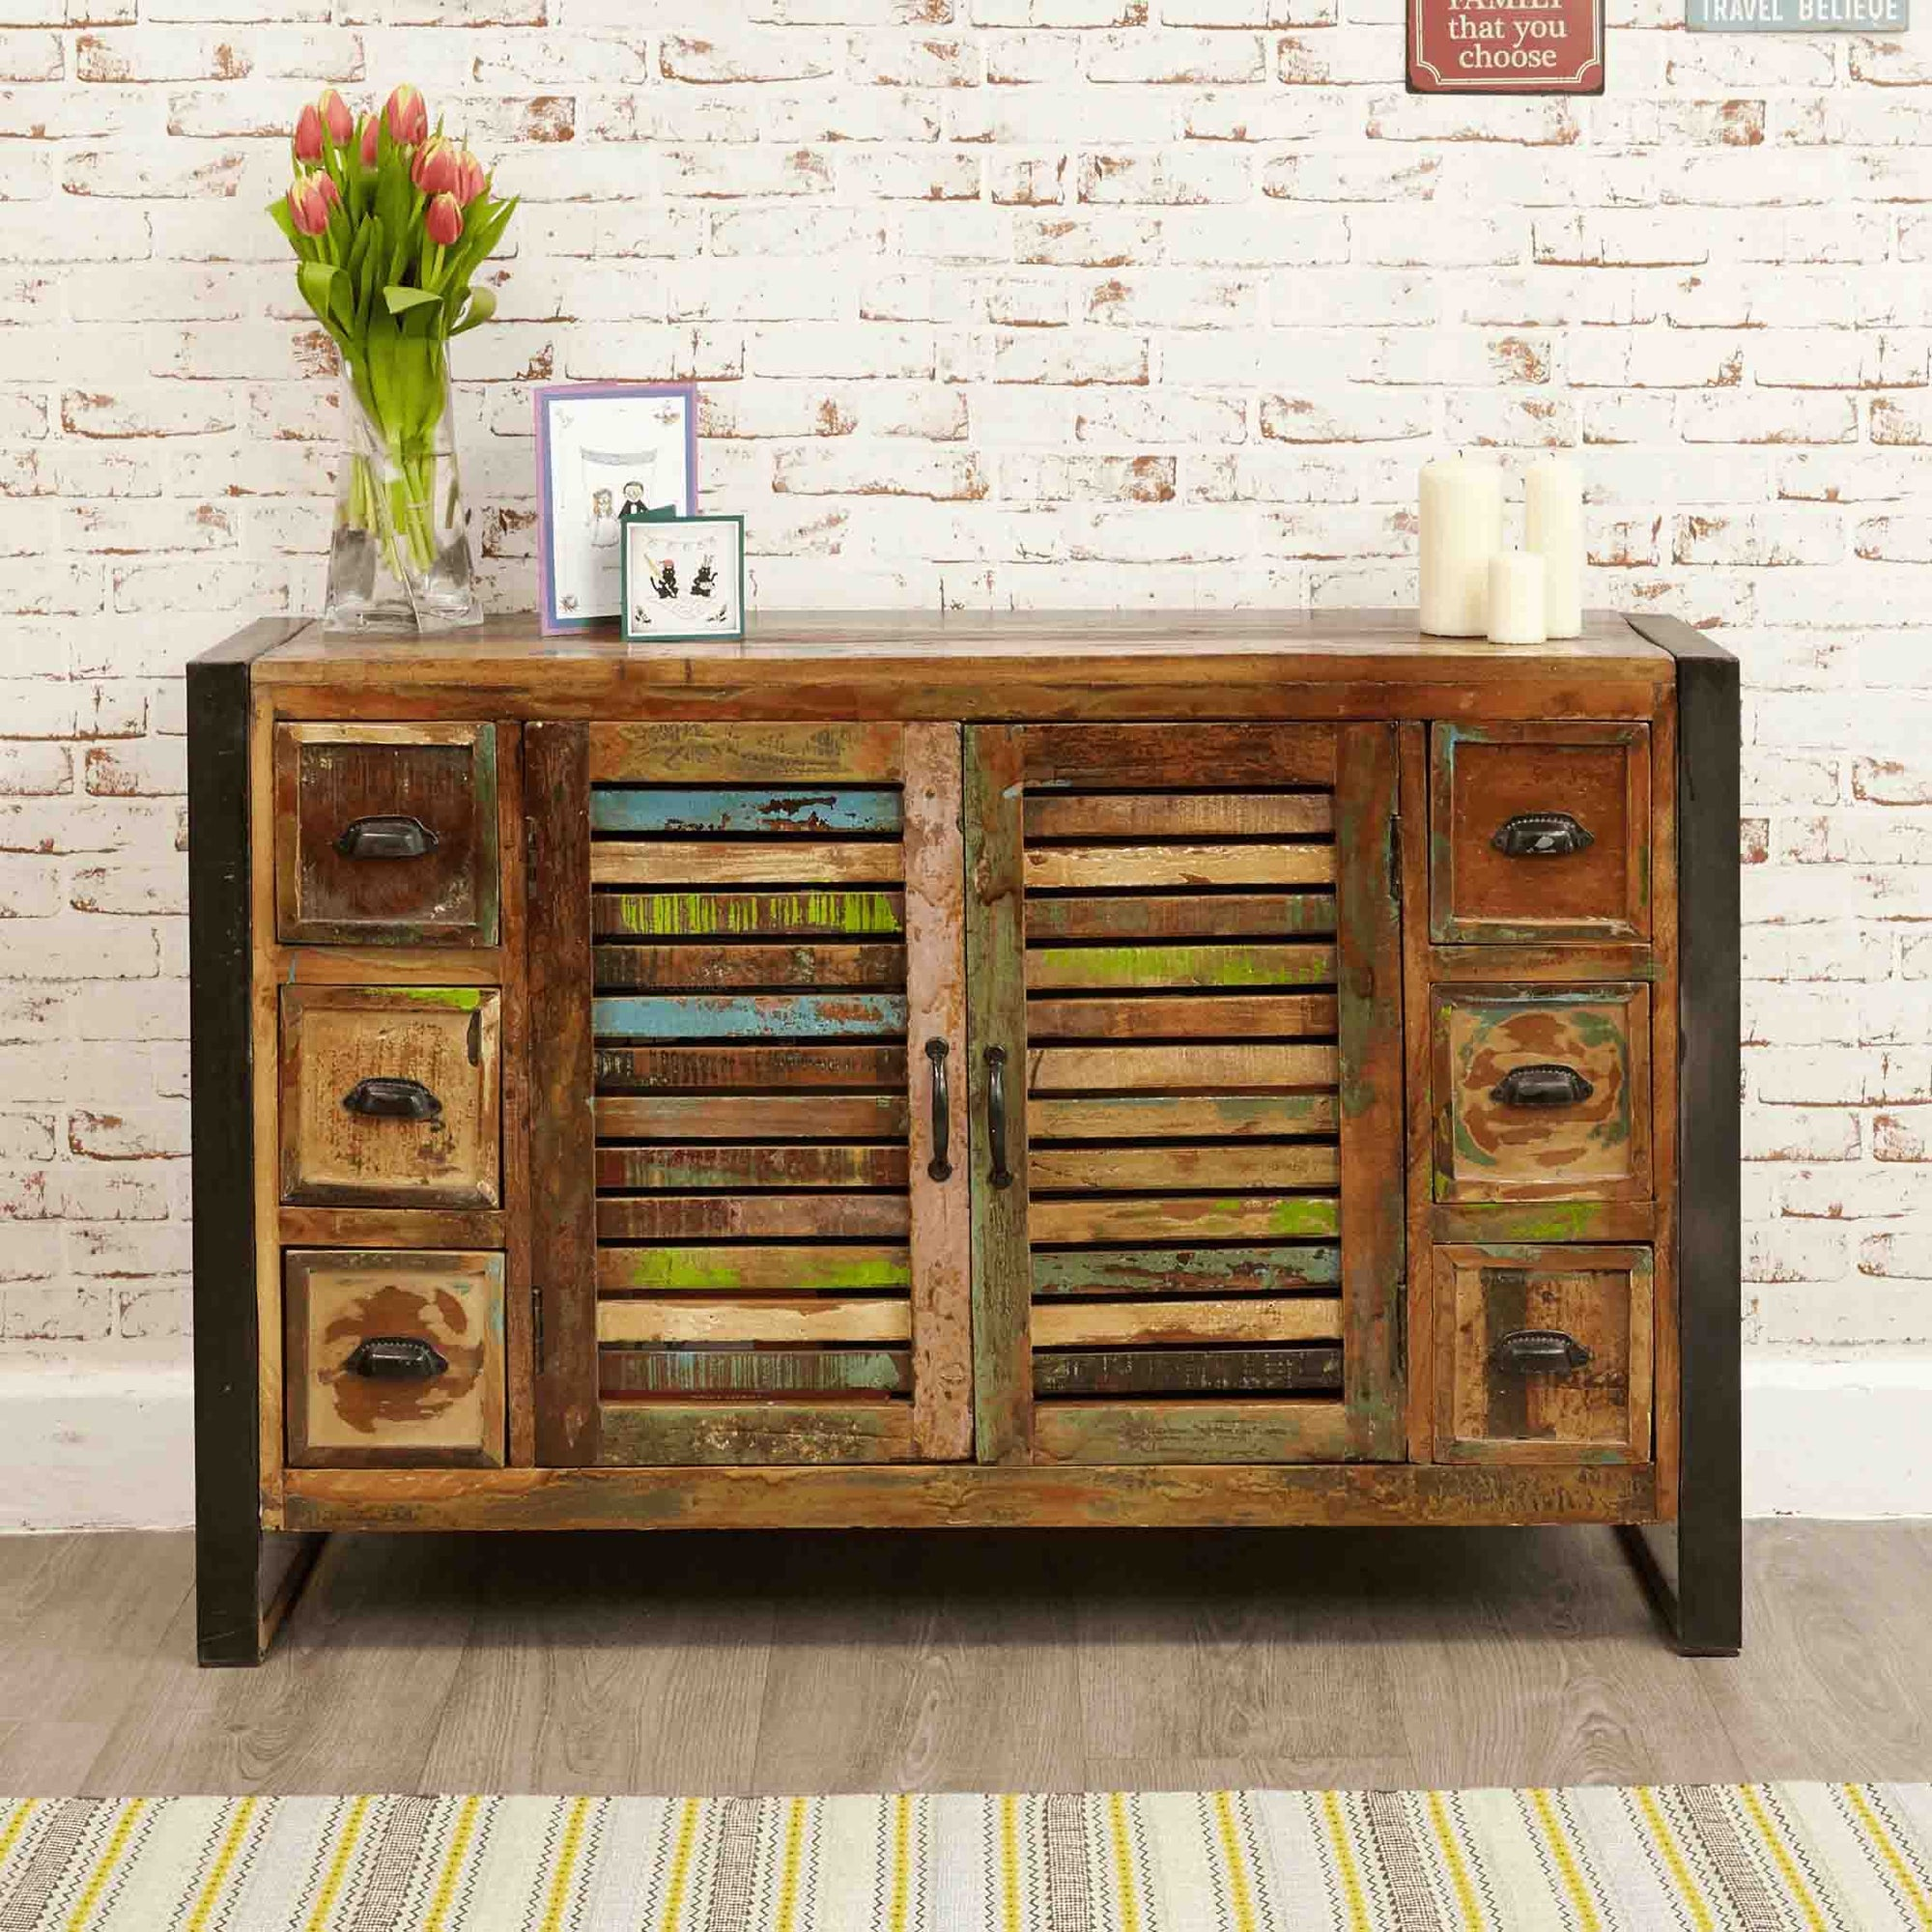 The Urban Chic Industrial Reclaimed Wood Sideboard with 6 Drawers from Roseland Furniture